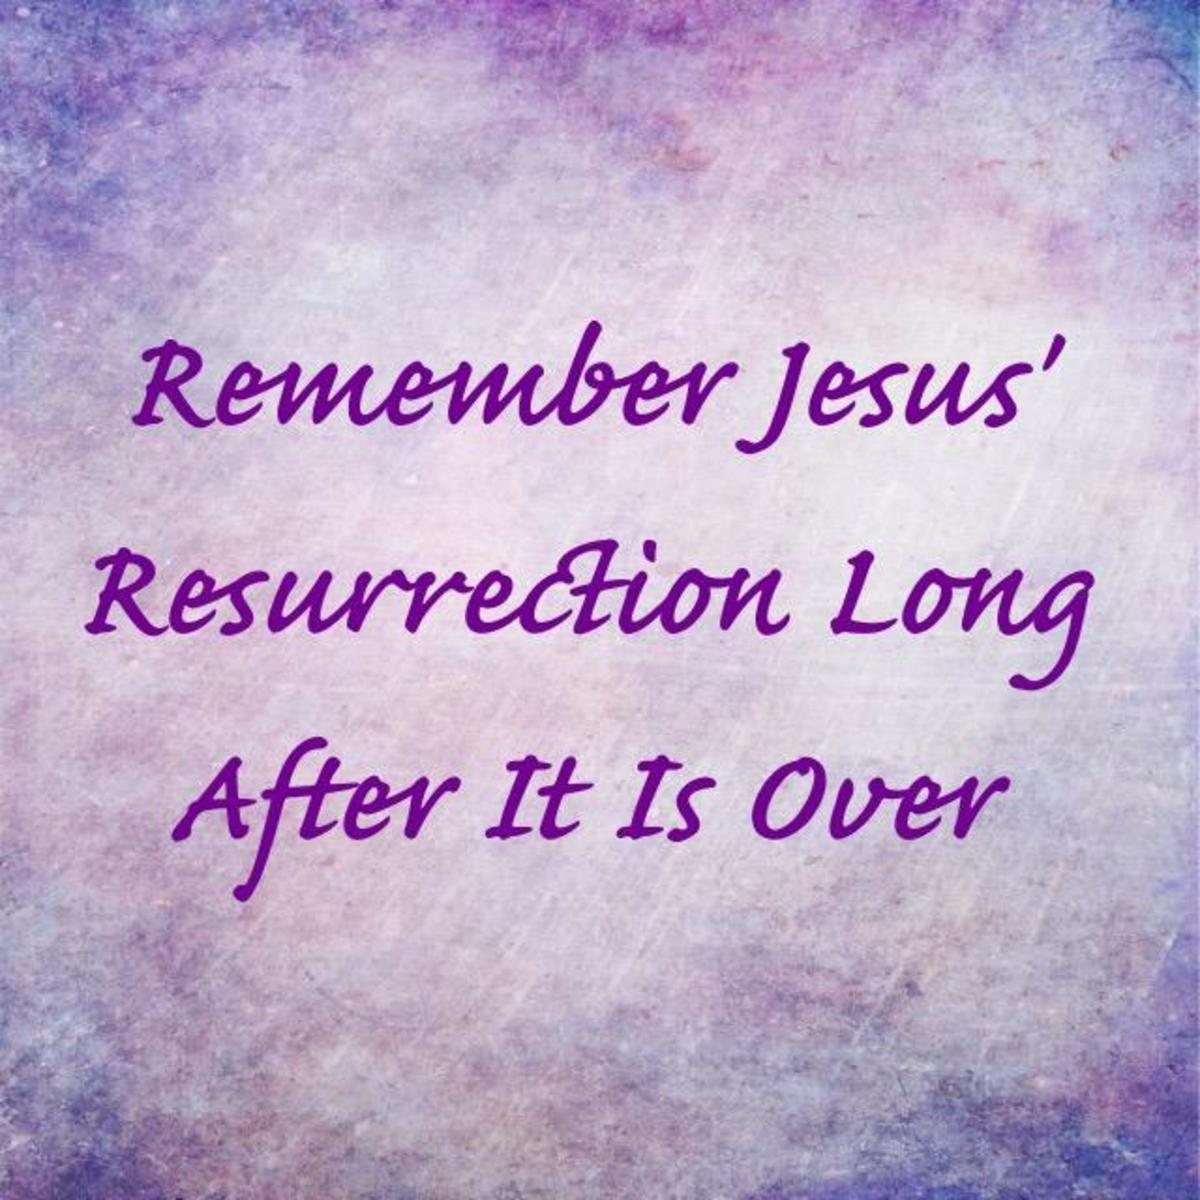 Remembering Jesus After His Resurrection